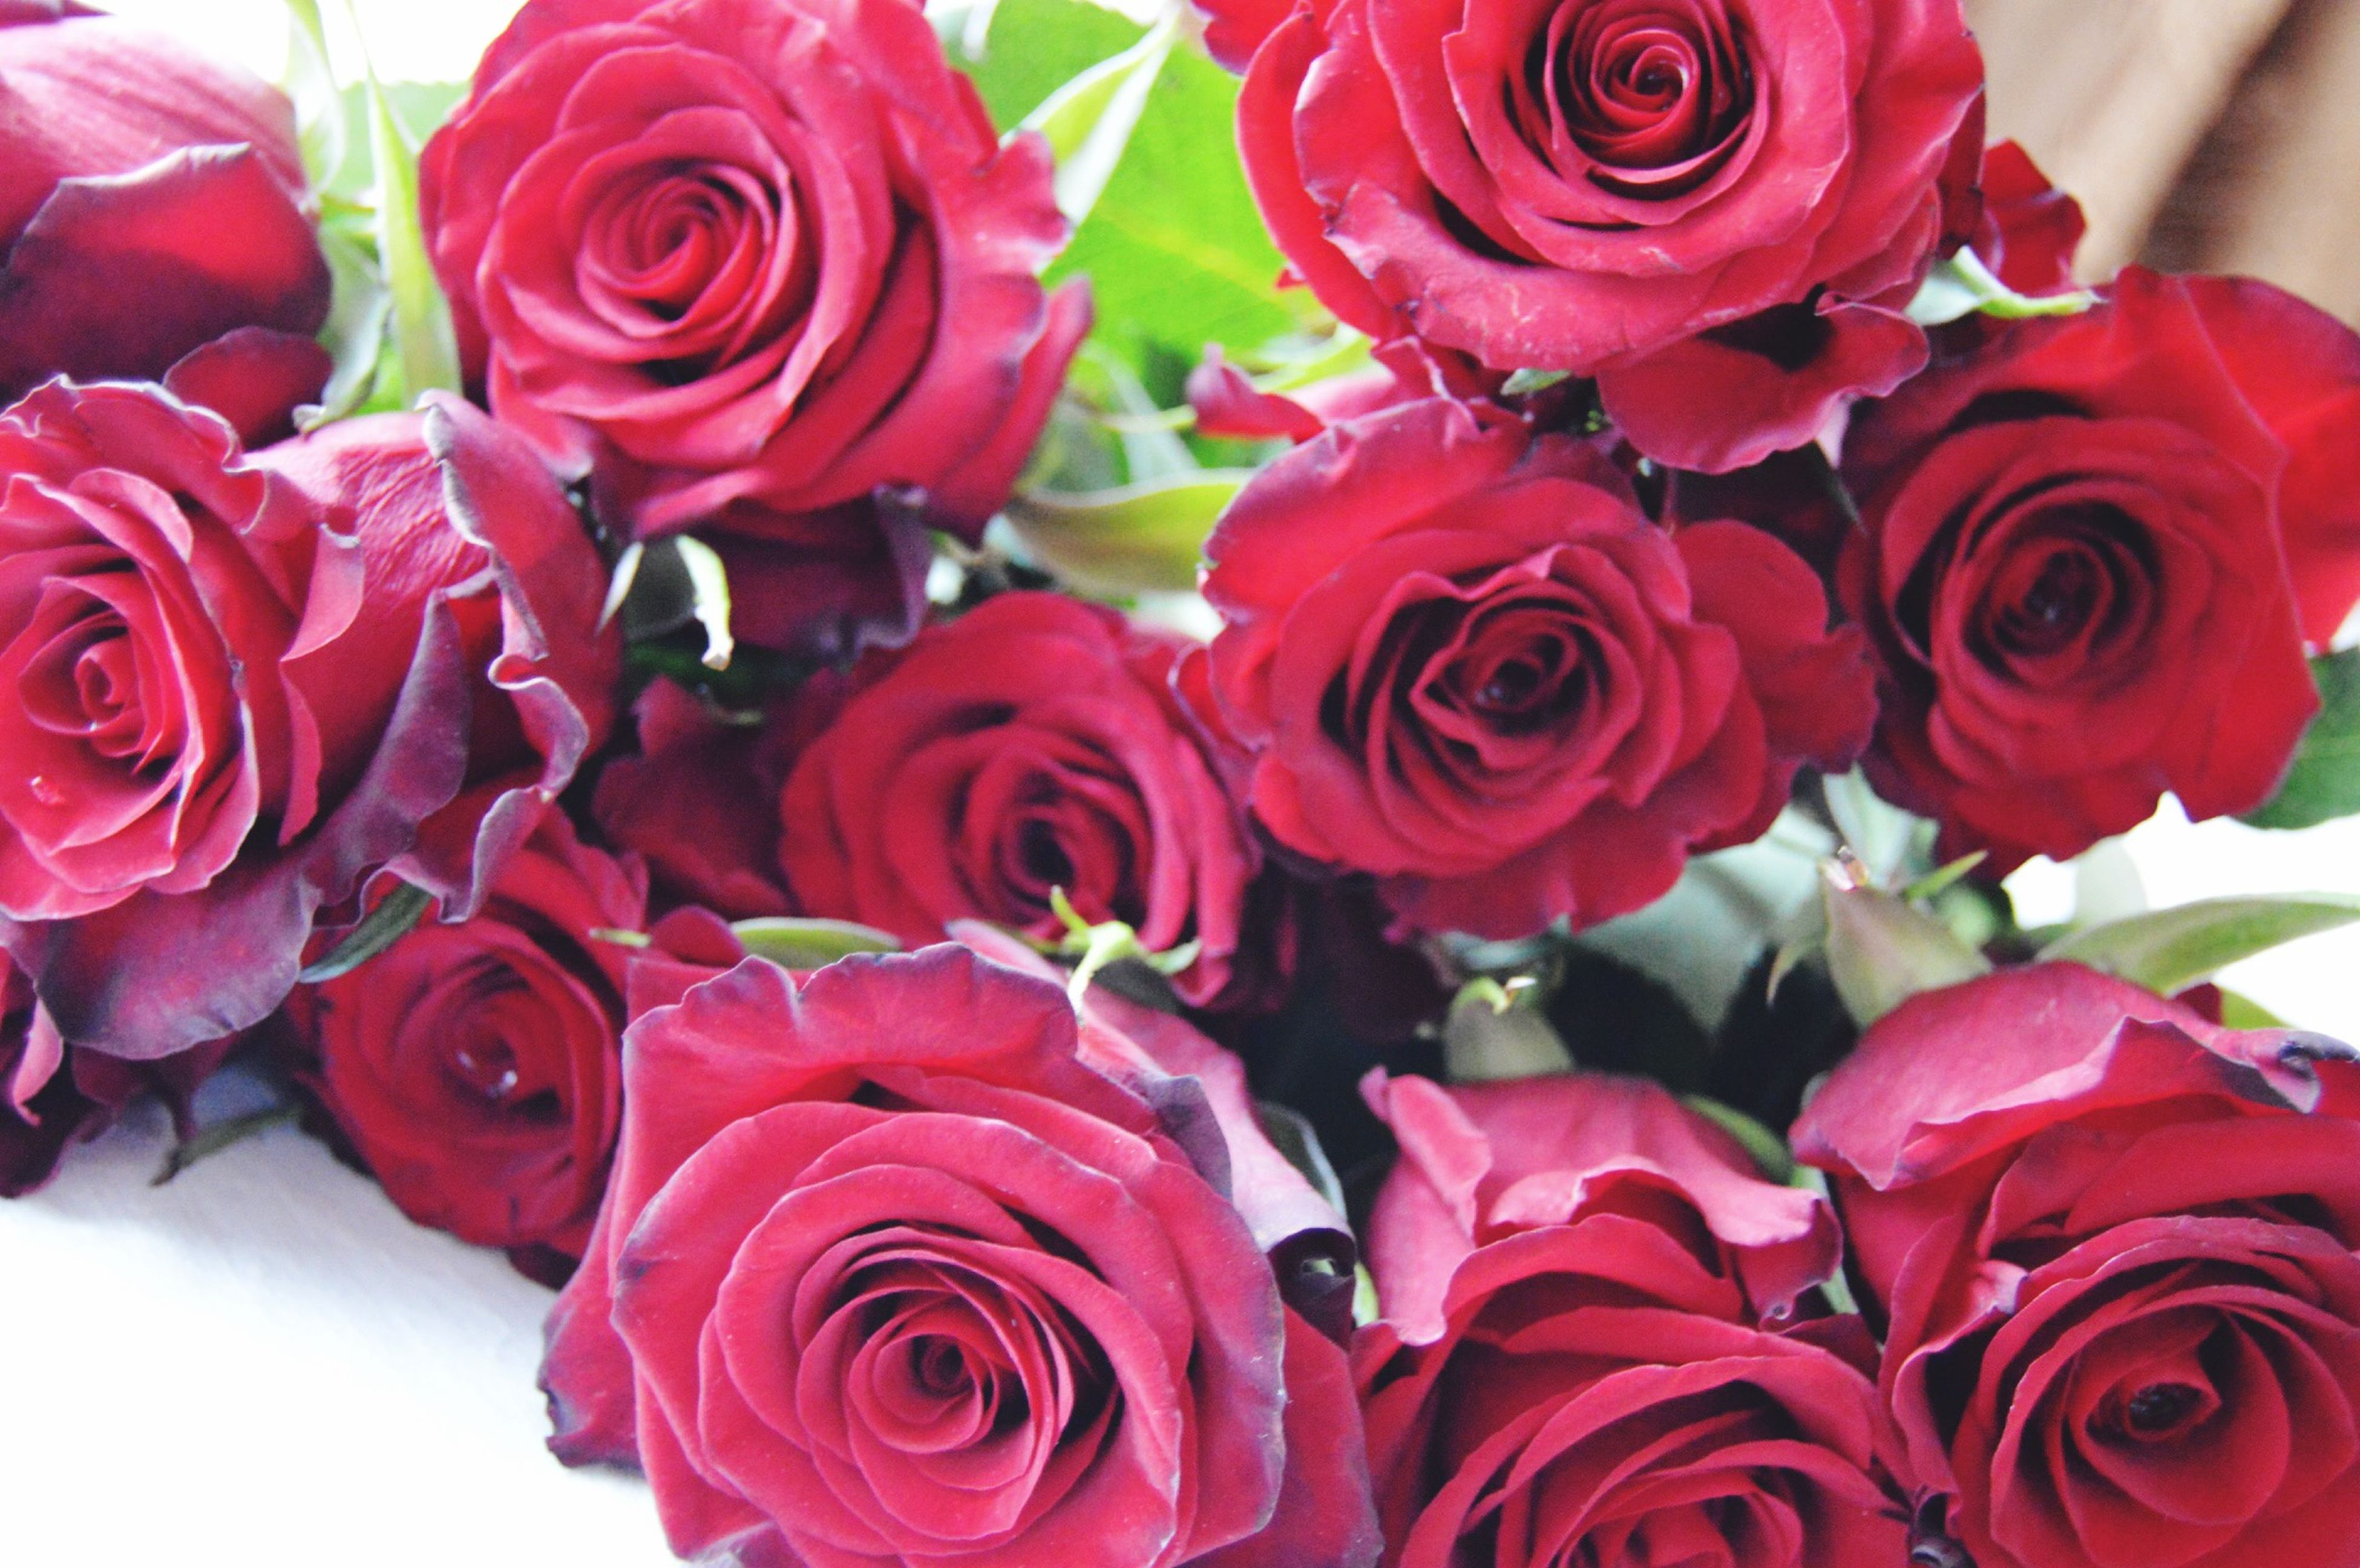 flower, freshness, petal, rose - flower, fragility, flower head, beauty in nature, red, pink color, rose, close-up, indoors, nature, bouquet, growth, blooming, tulip, bunch of flowers, full frame, plant